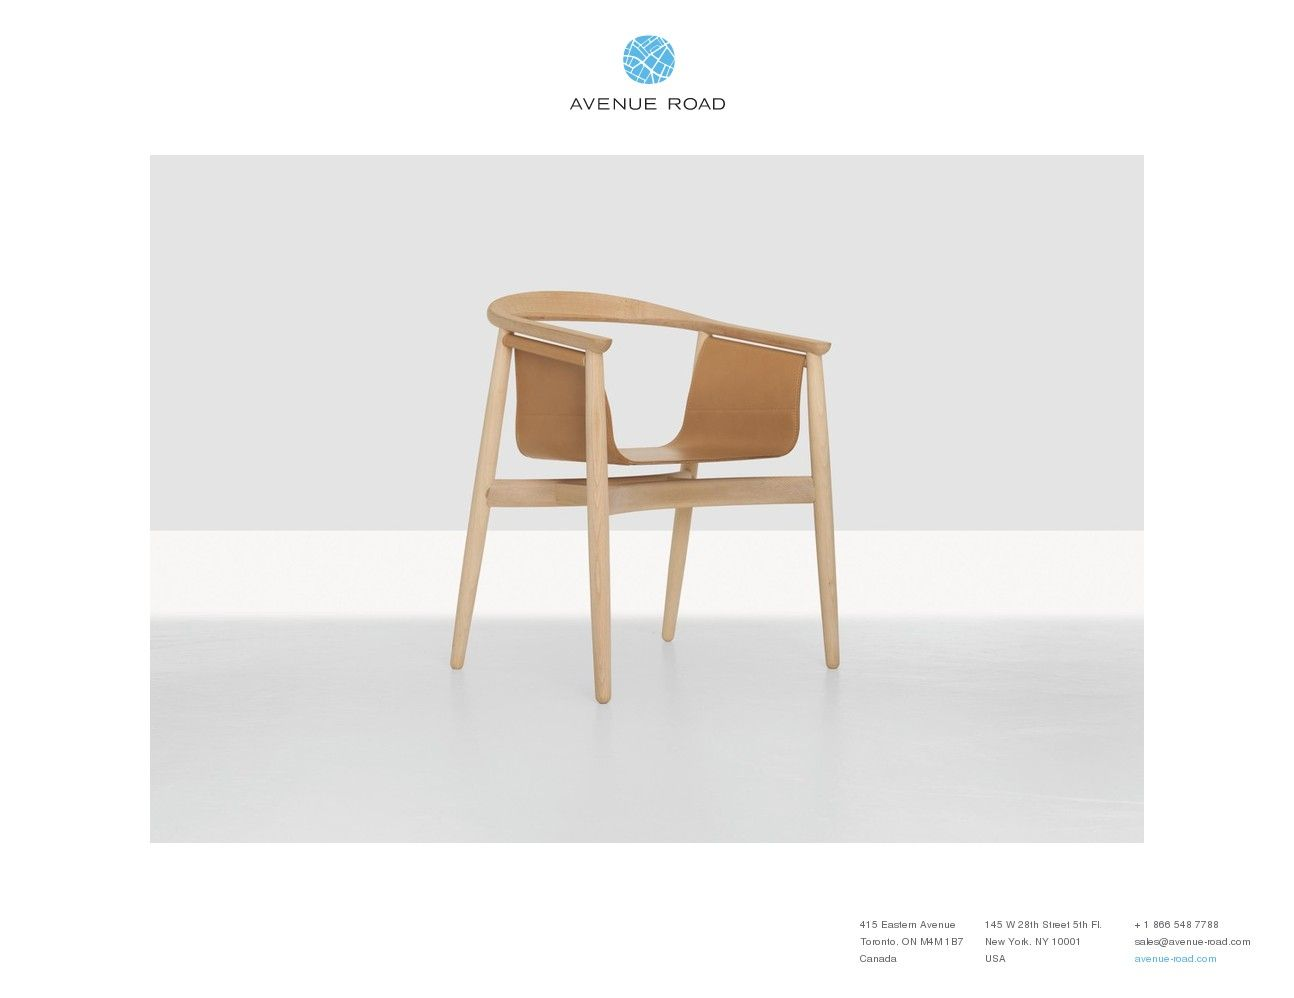 One And A Half Chair Canada Rifton Hi Lo Activity Pin By Mister Important Design On Pacific City Furniture Pelle Http Avenue Road Com Catalogue